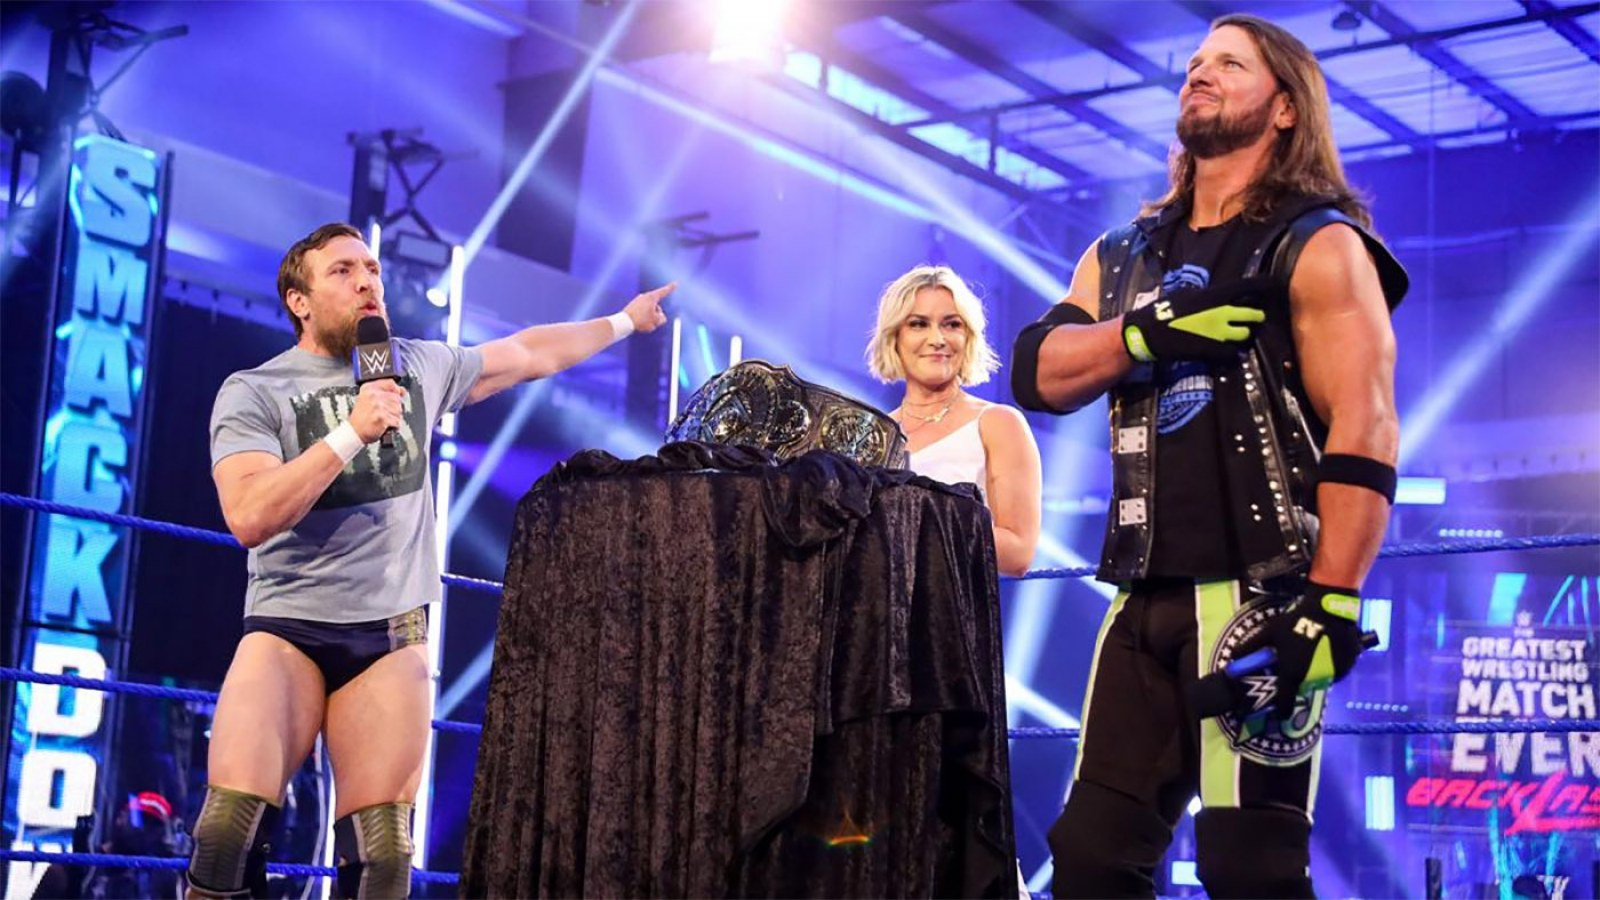 Revealed: AJ Styles' Opponent At 2020 WWE Extreme Rules PPV 2